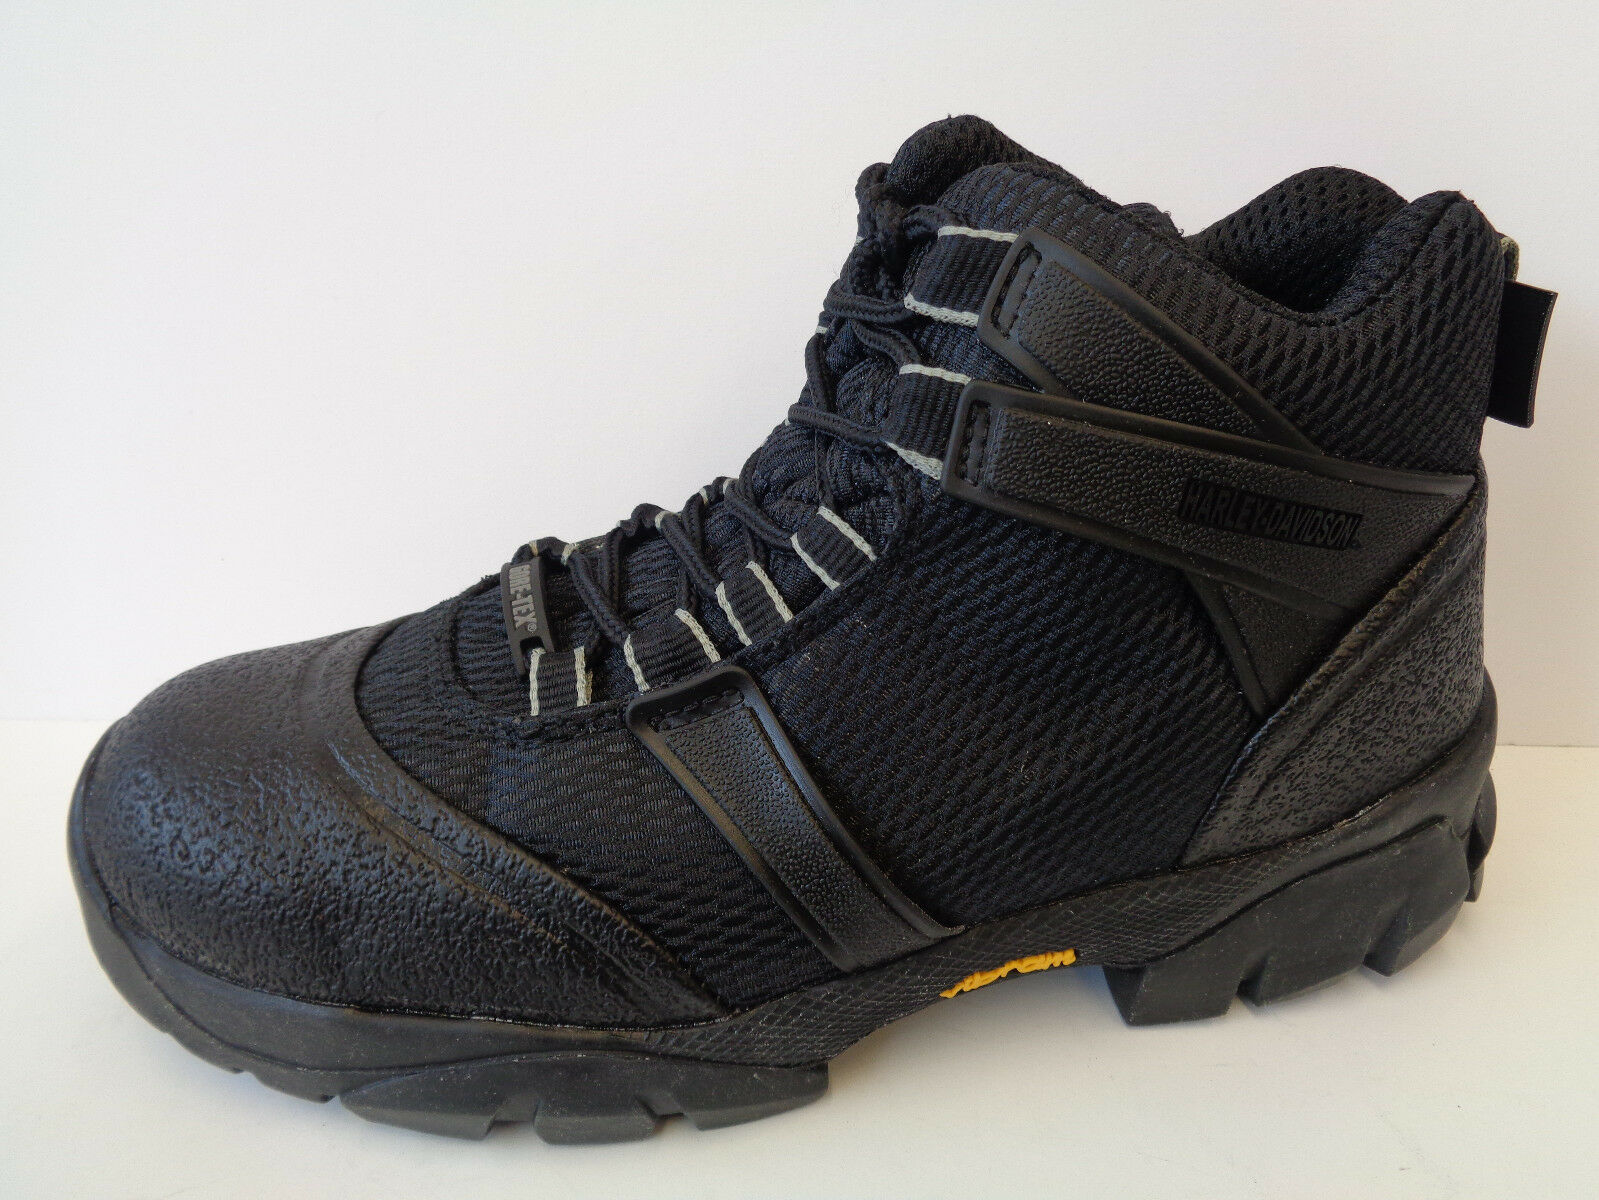 Mens Black Lace Up Gore Tex Vibram Harley Davidson Walking Boots Surge Hiker